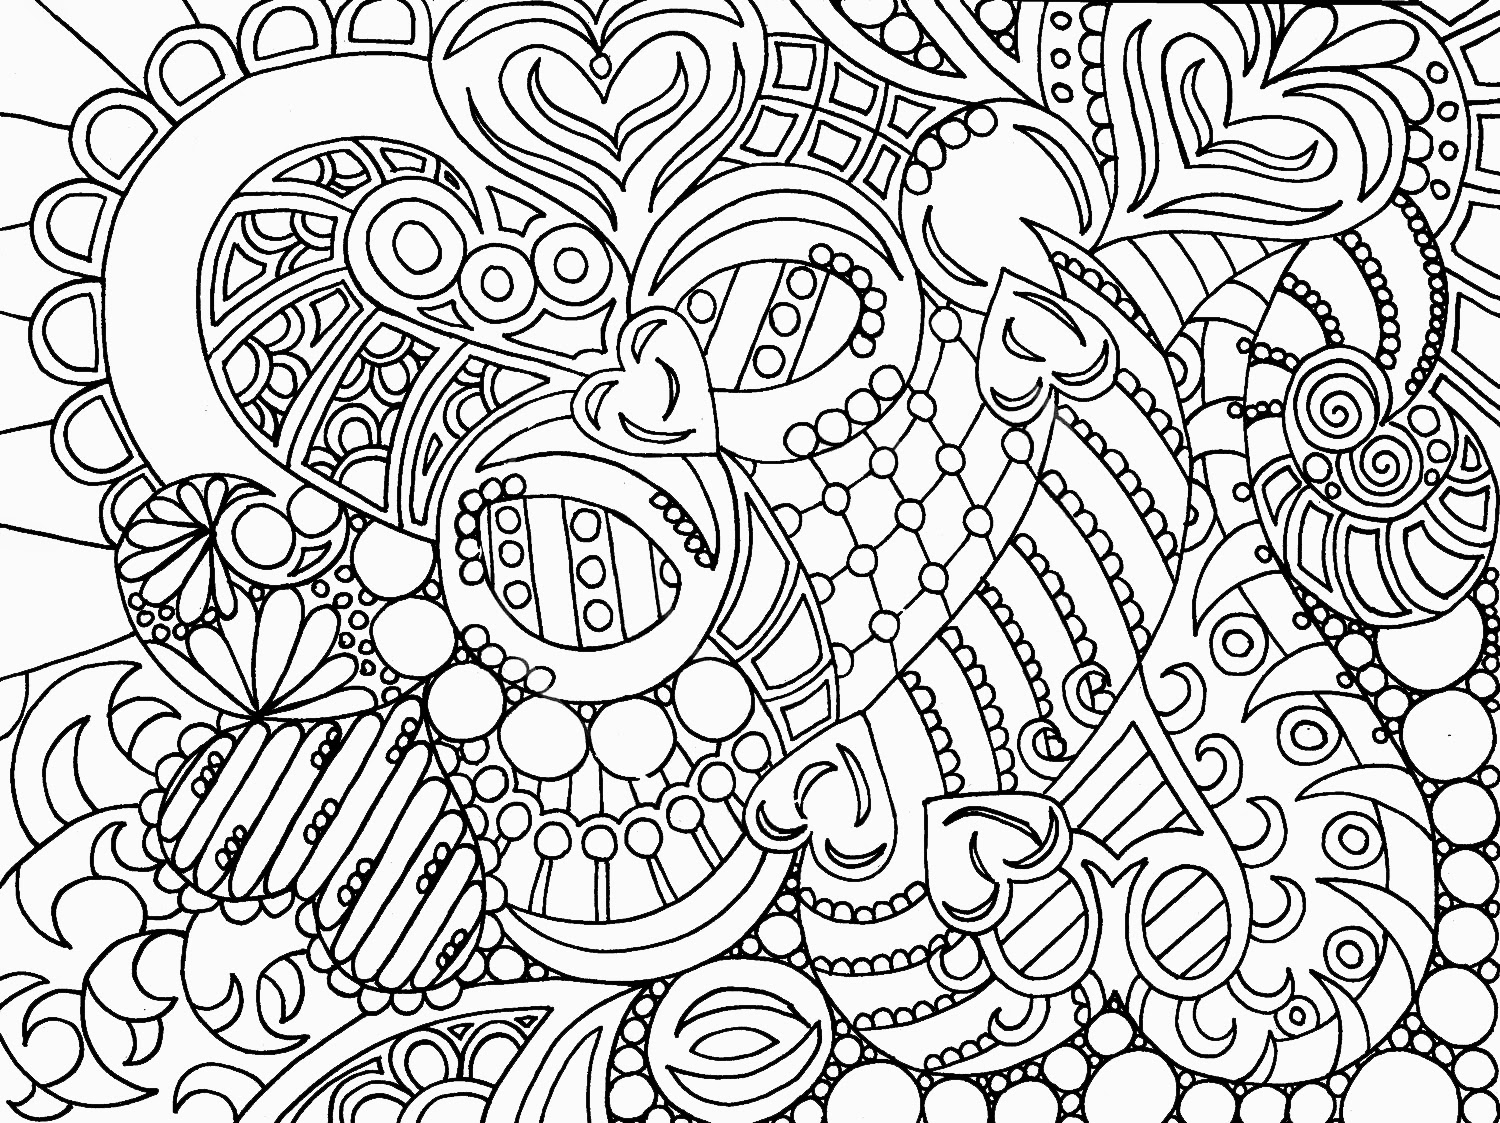 Coloring Pages that You Can Color T8ls Download Of Printable Puter Coloring Pages Collection